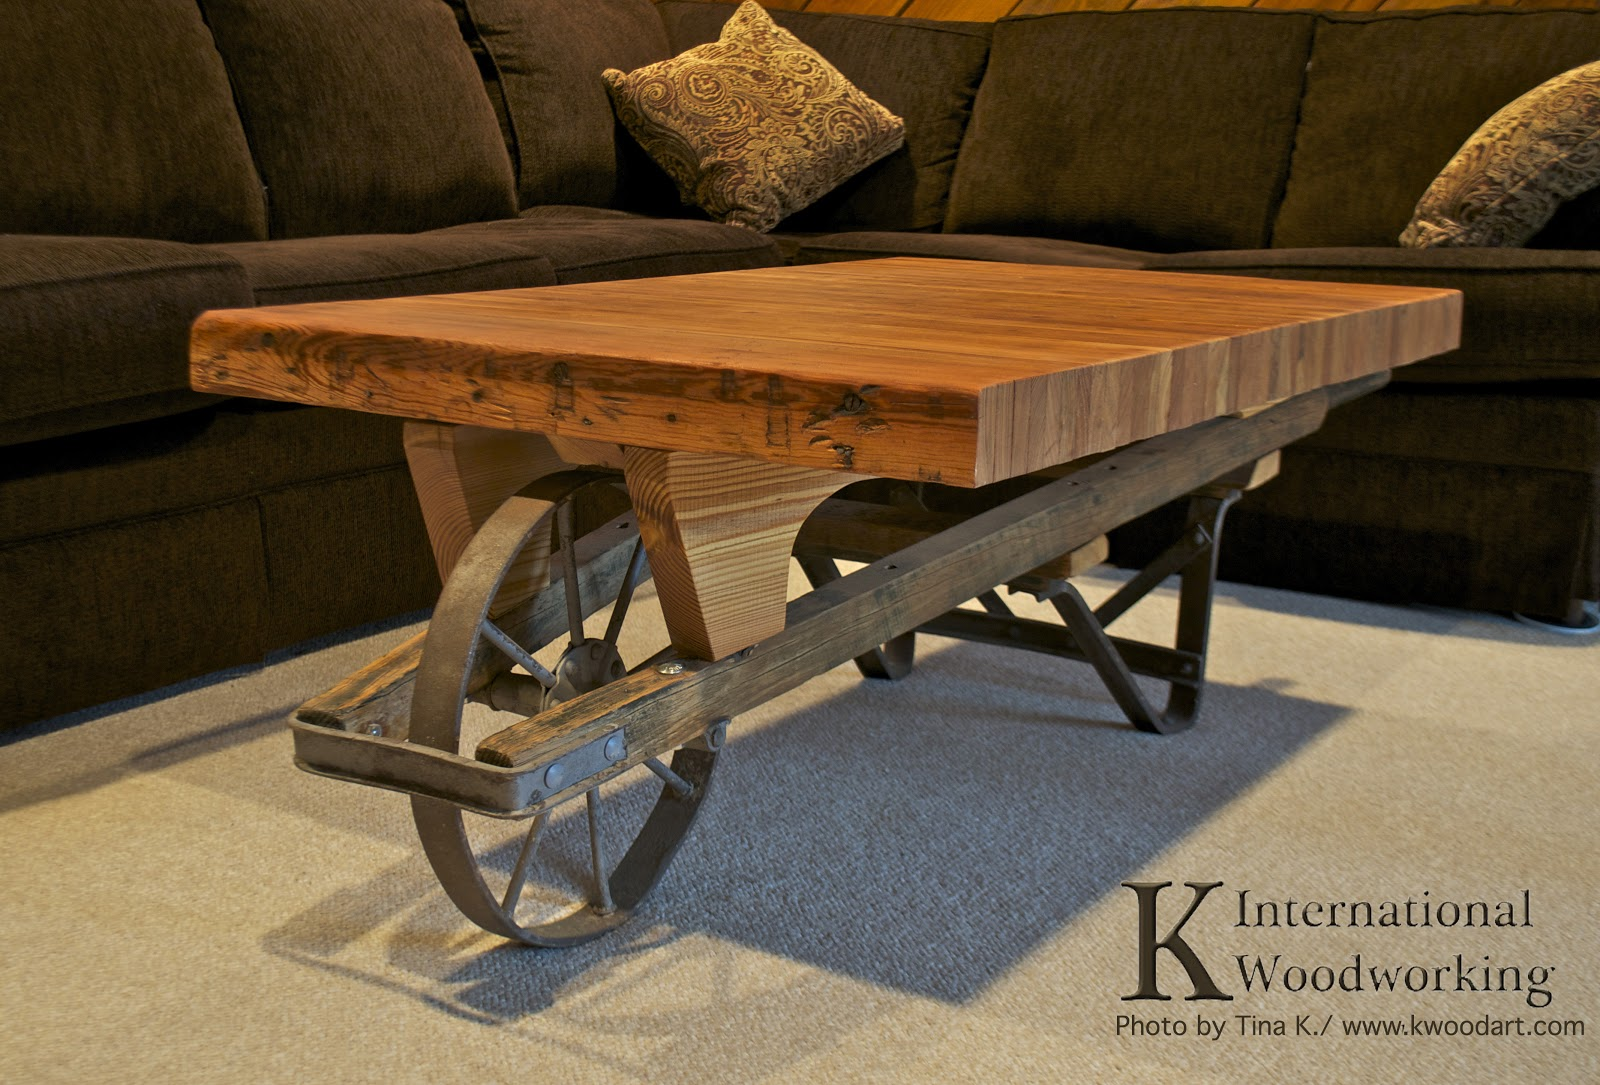 Charmant Reclaimed Recycled Repurposed Wheelbarrow Bowling Lane Coffee Table